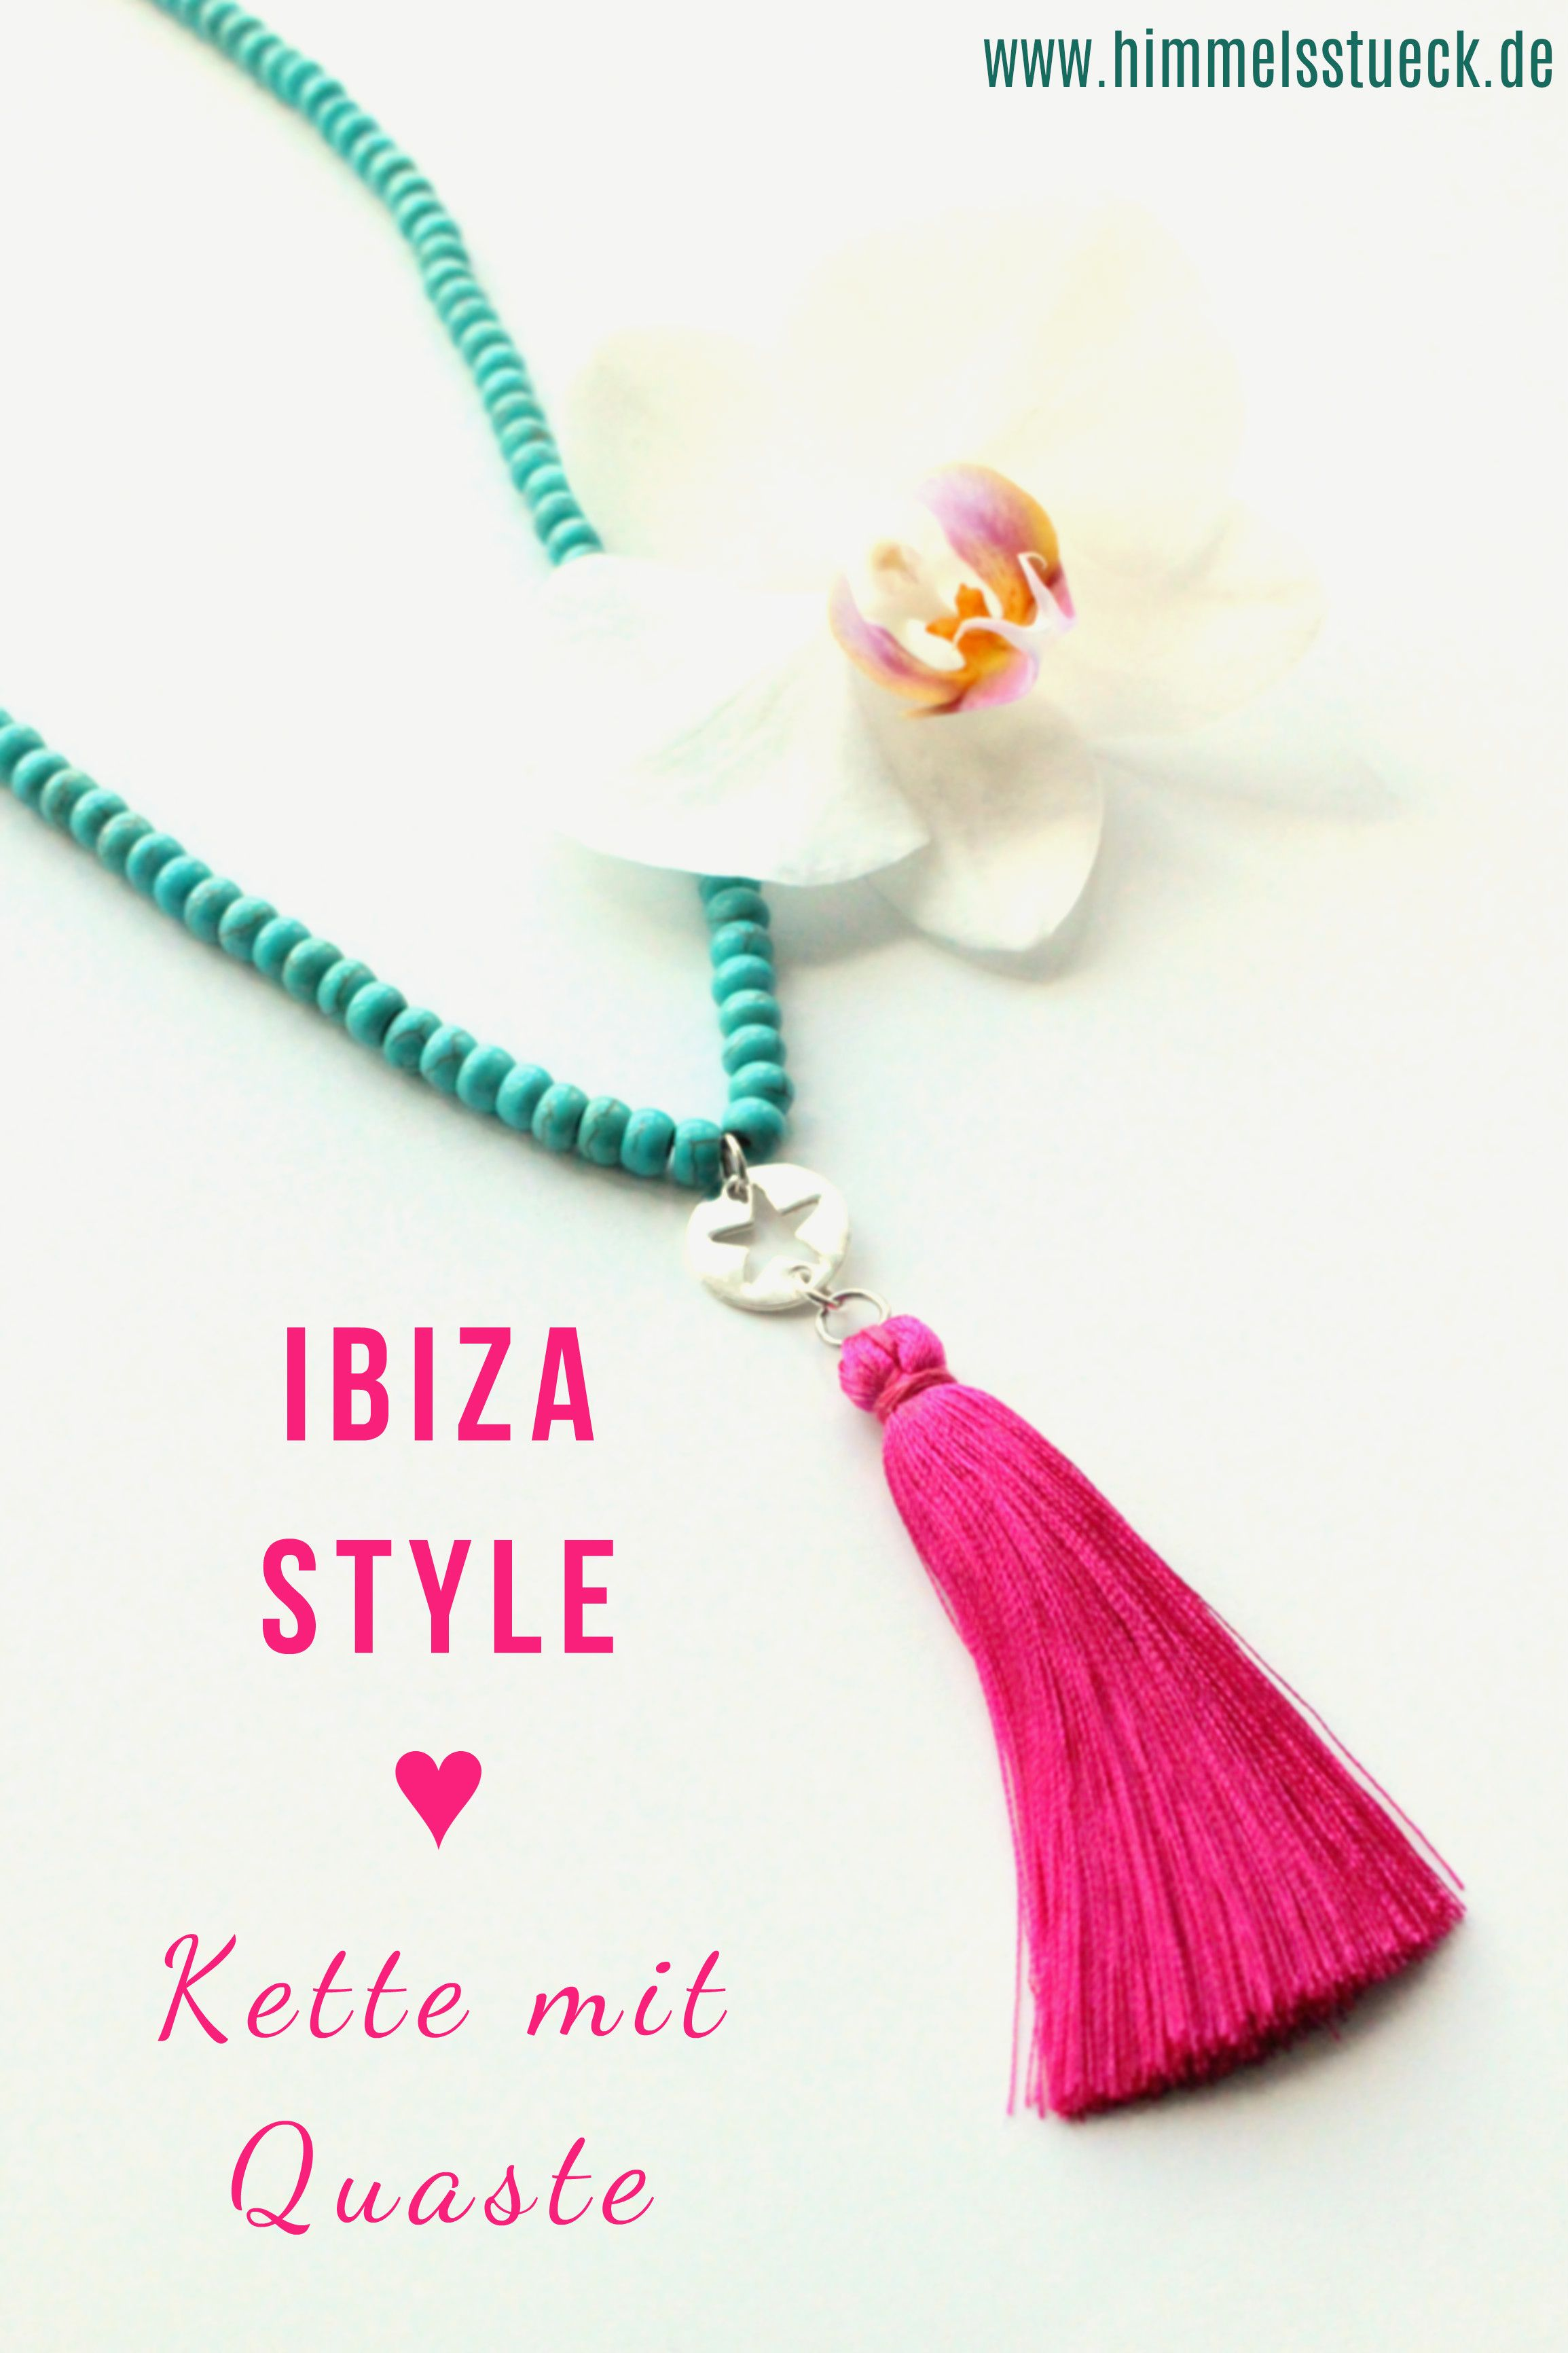 diy ibiza style quasten kette tassel diy schmuck pinterest schmuck basteln schmuck. Black Bedroom Furniture Sets. Home Design Ideas